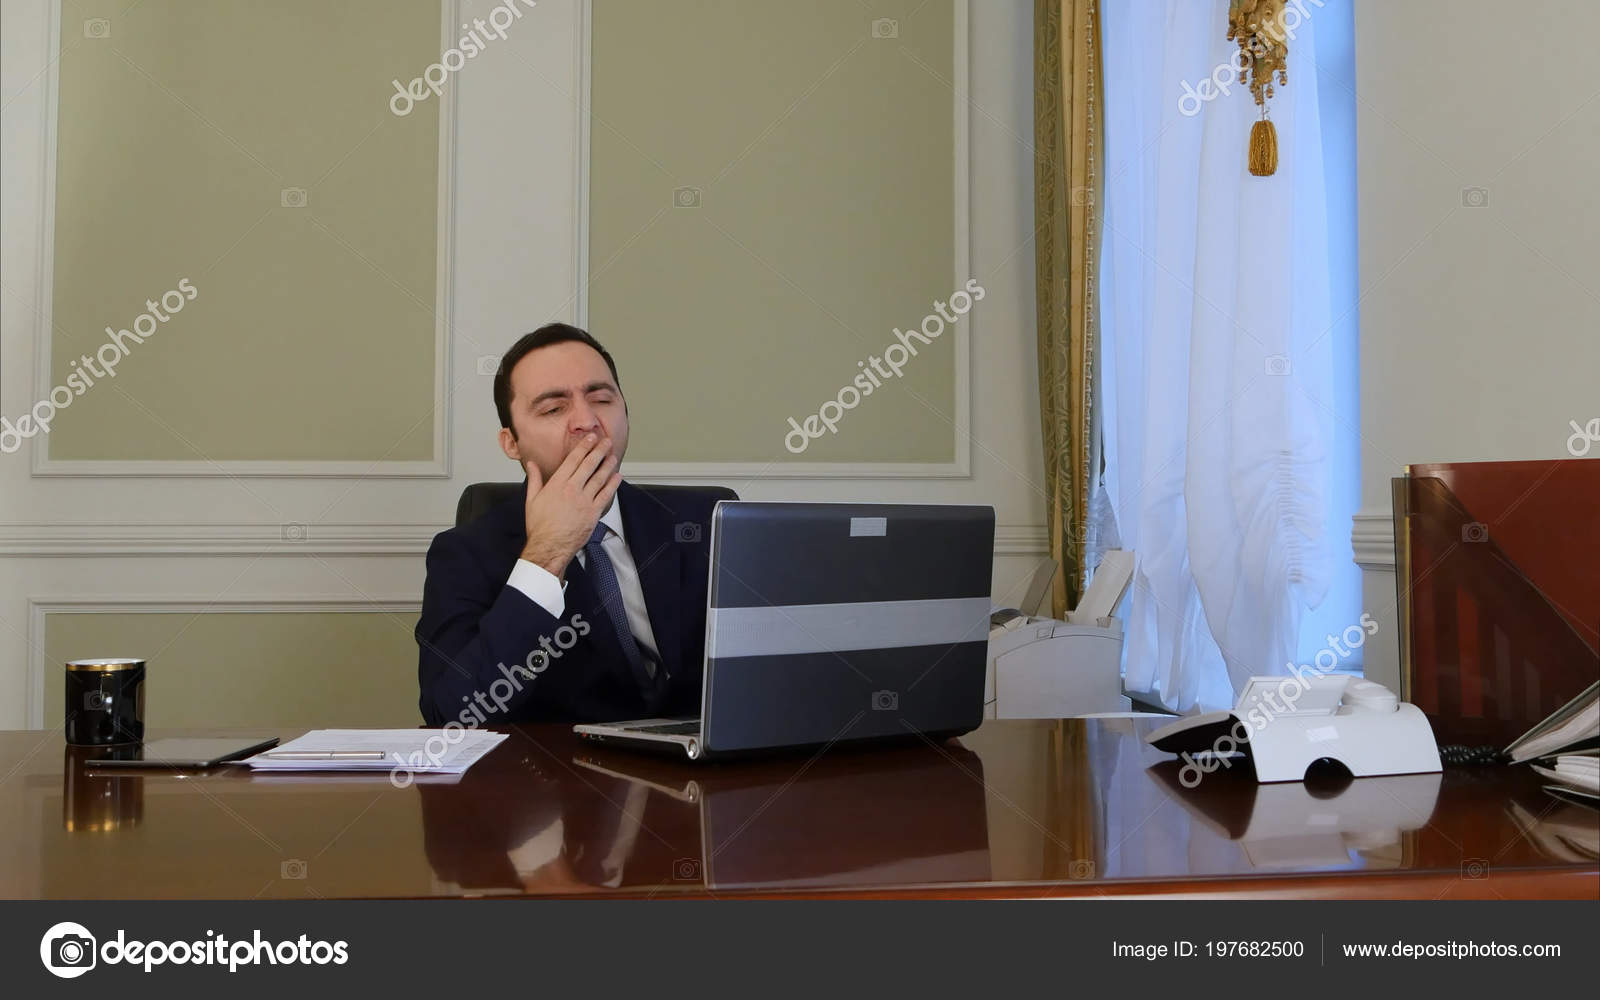 Tired businessman finishes working on laptop, relaxing and